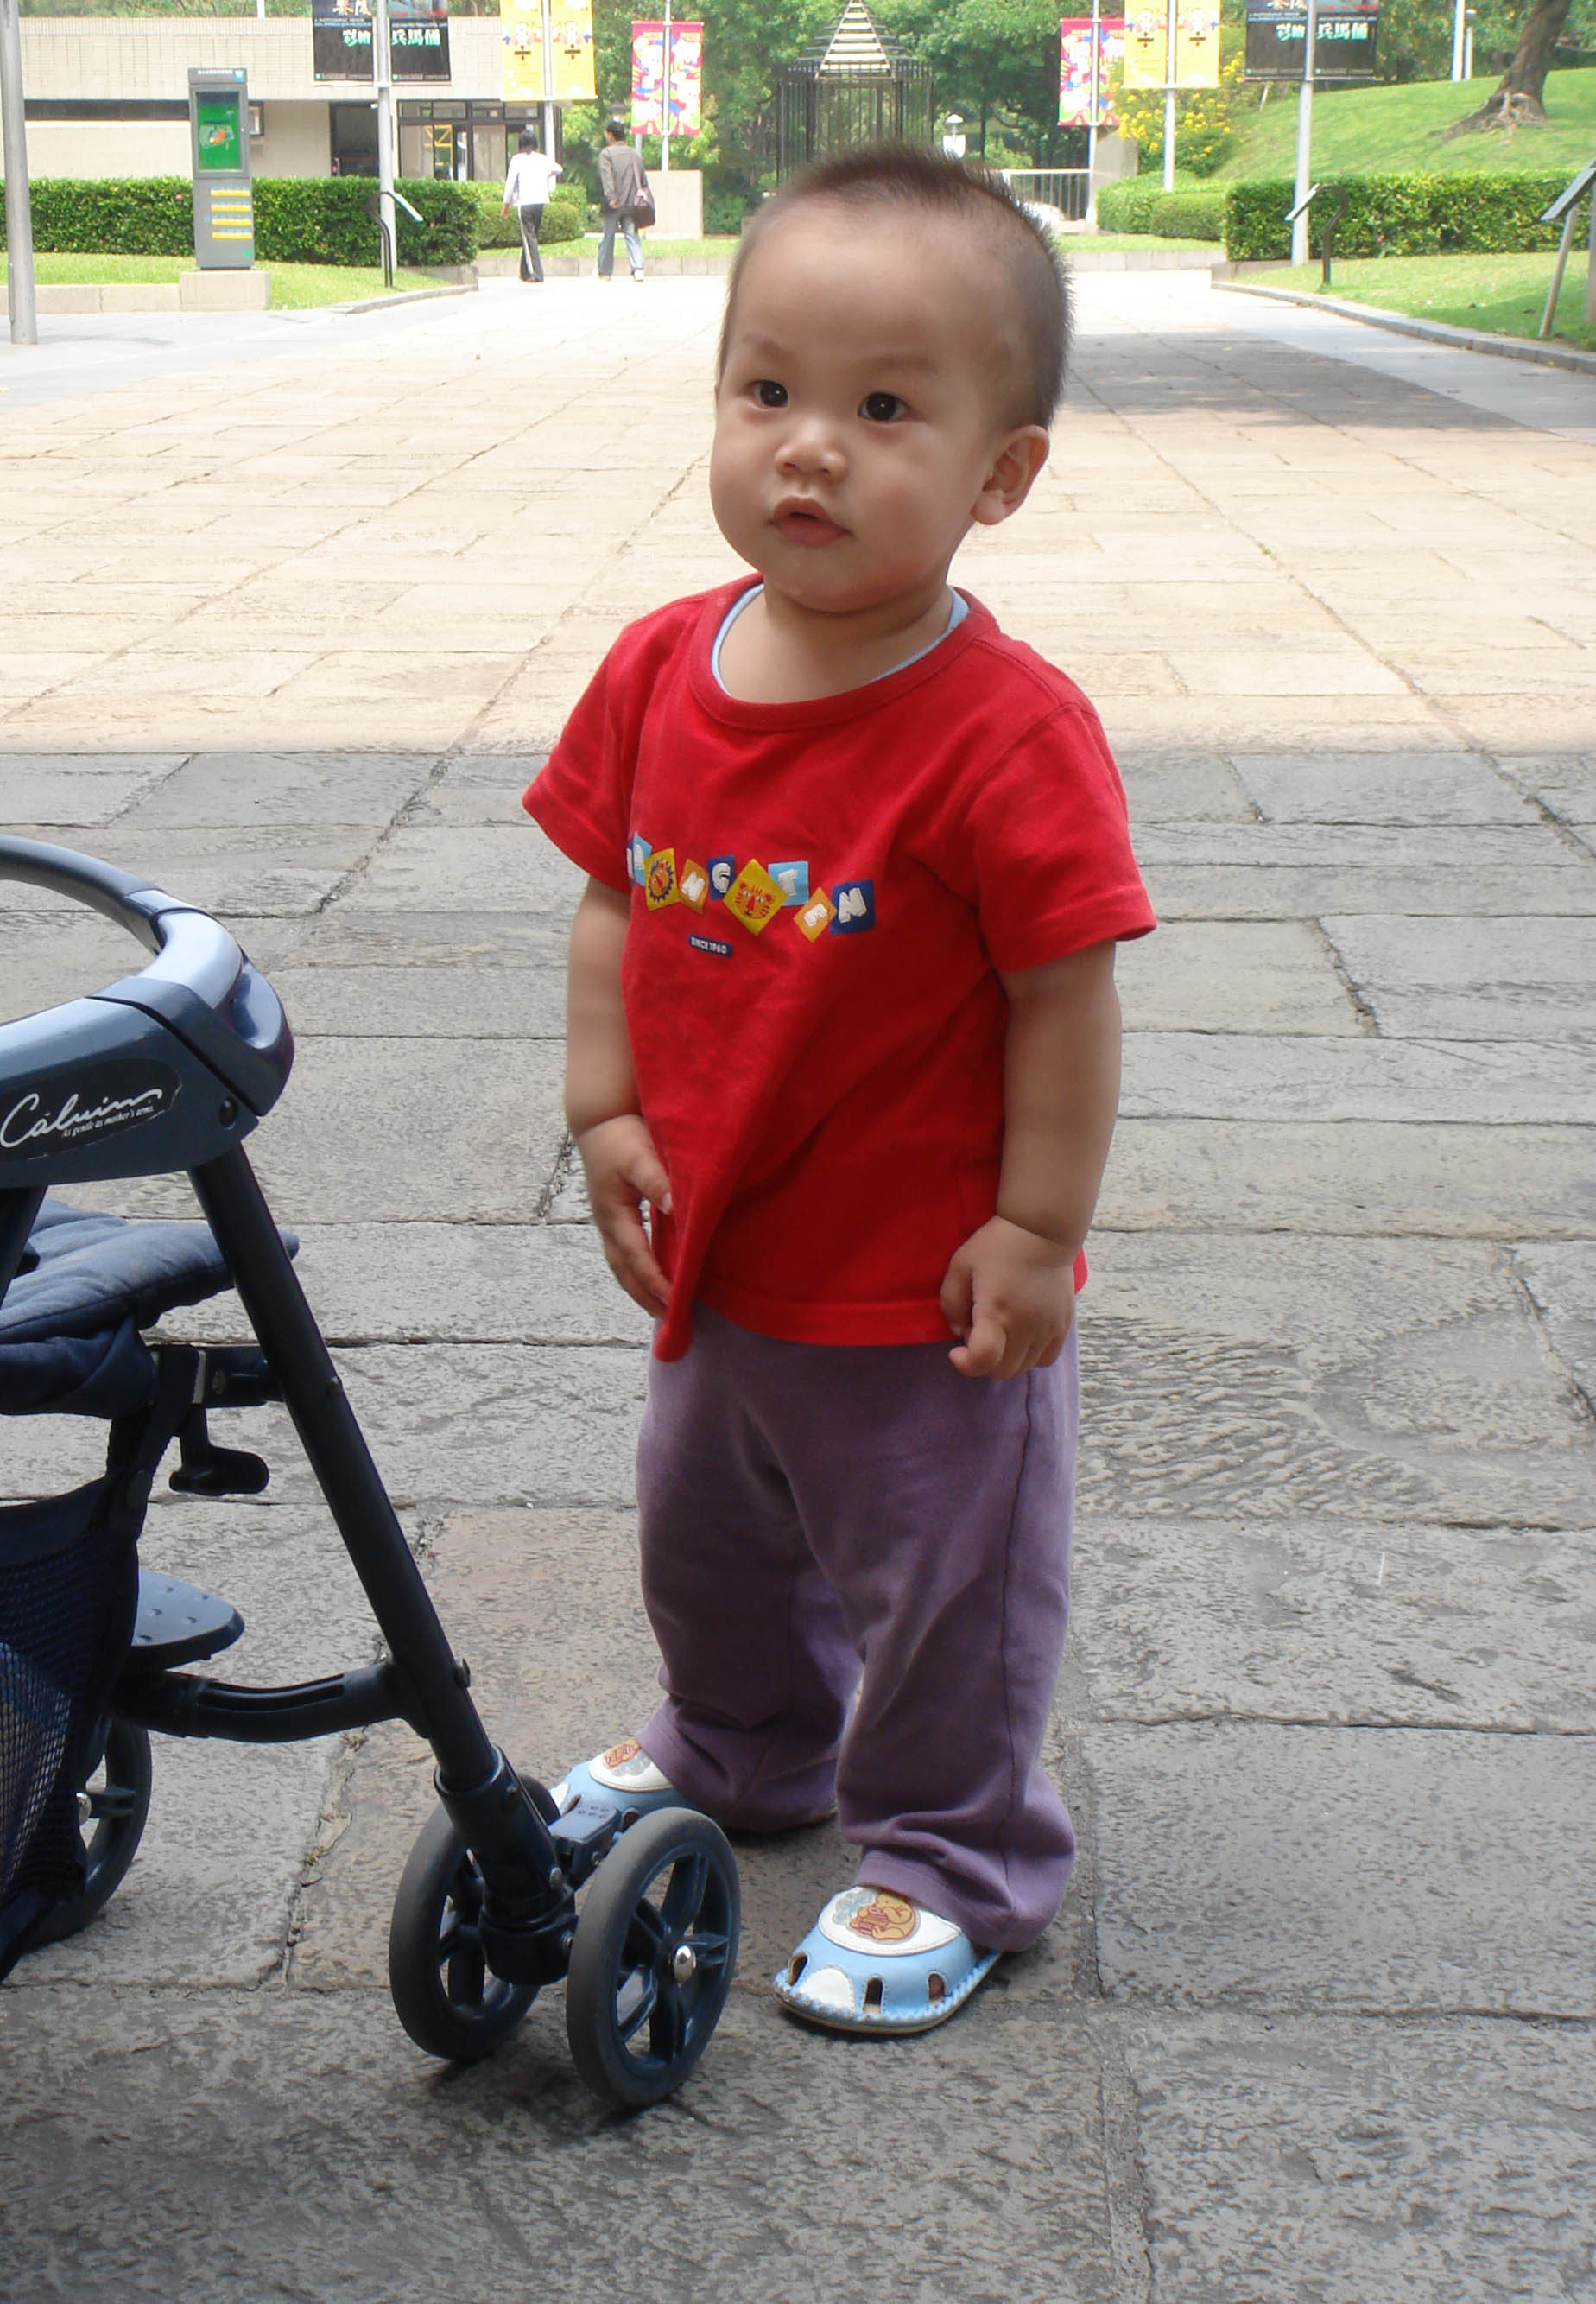 Lovely kid, Baby, Child, Children, Free baby images, HQ Photo